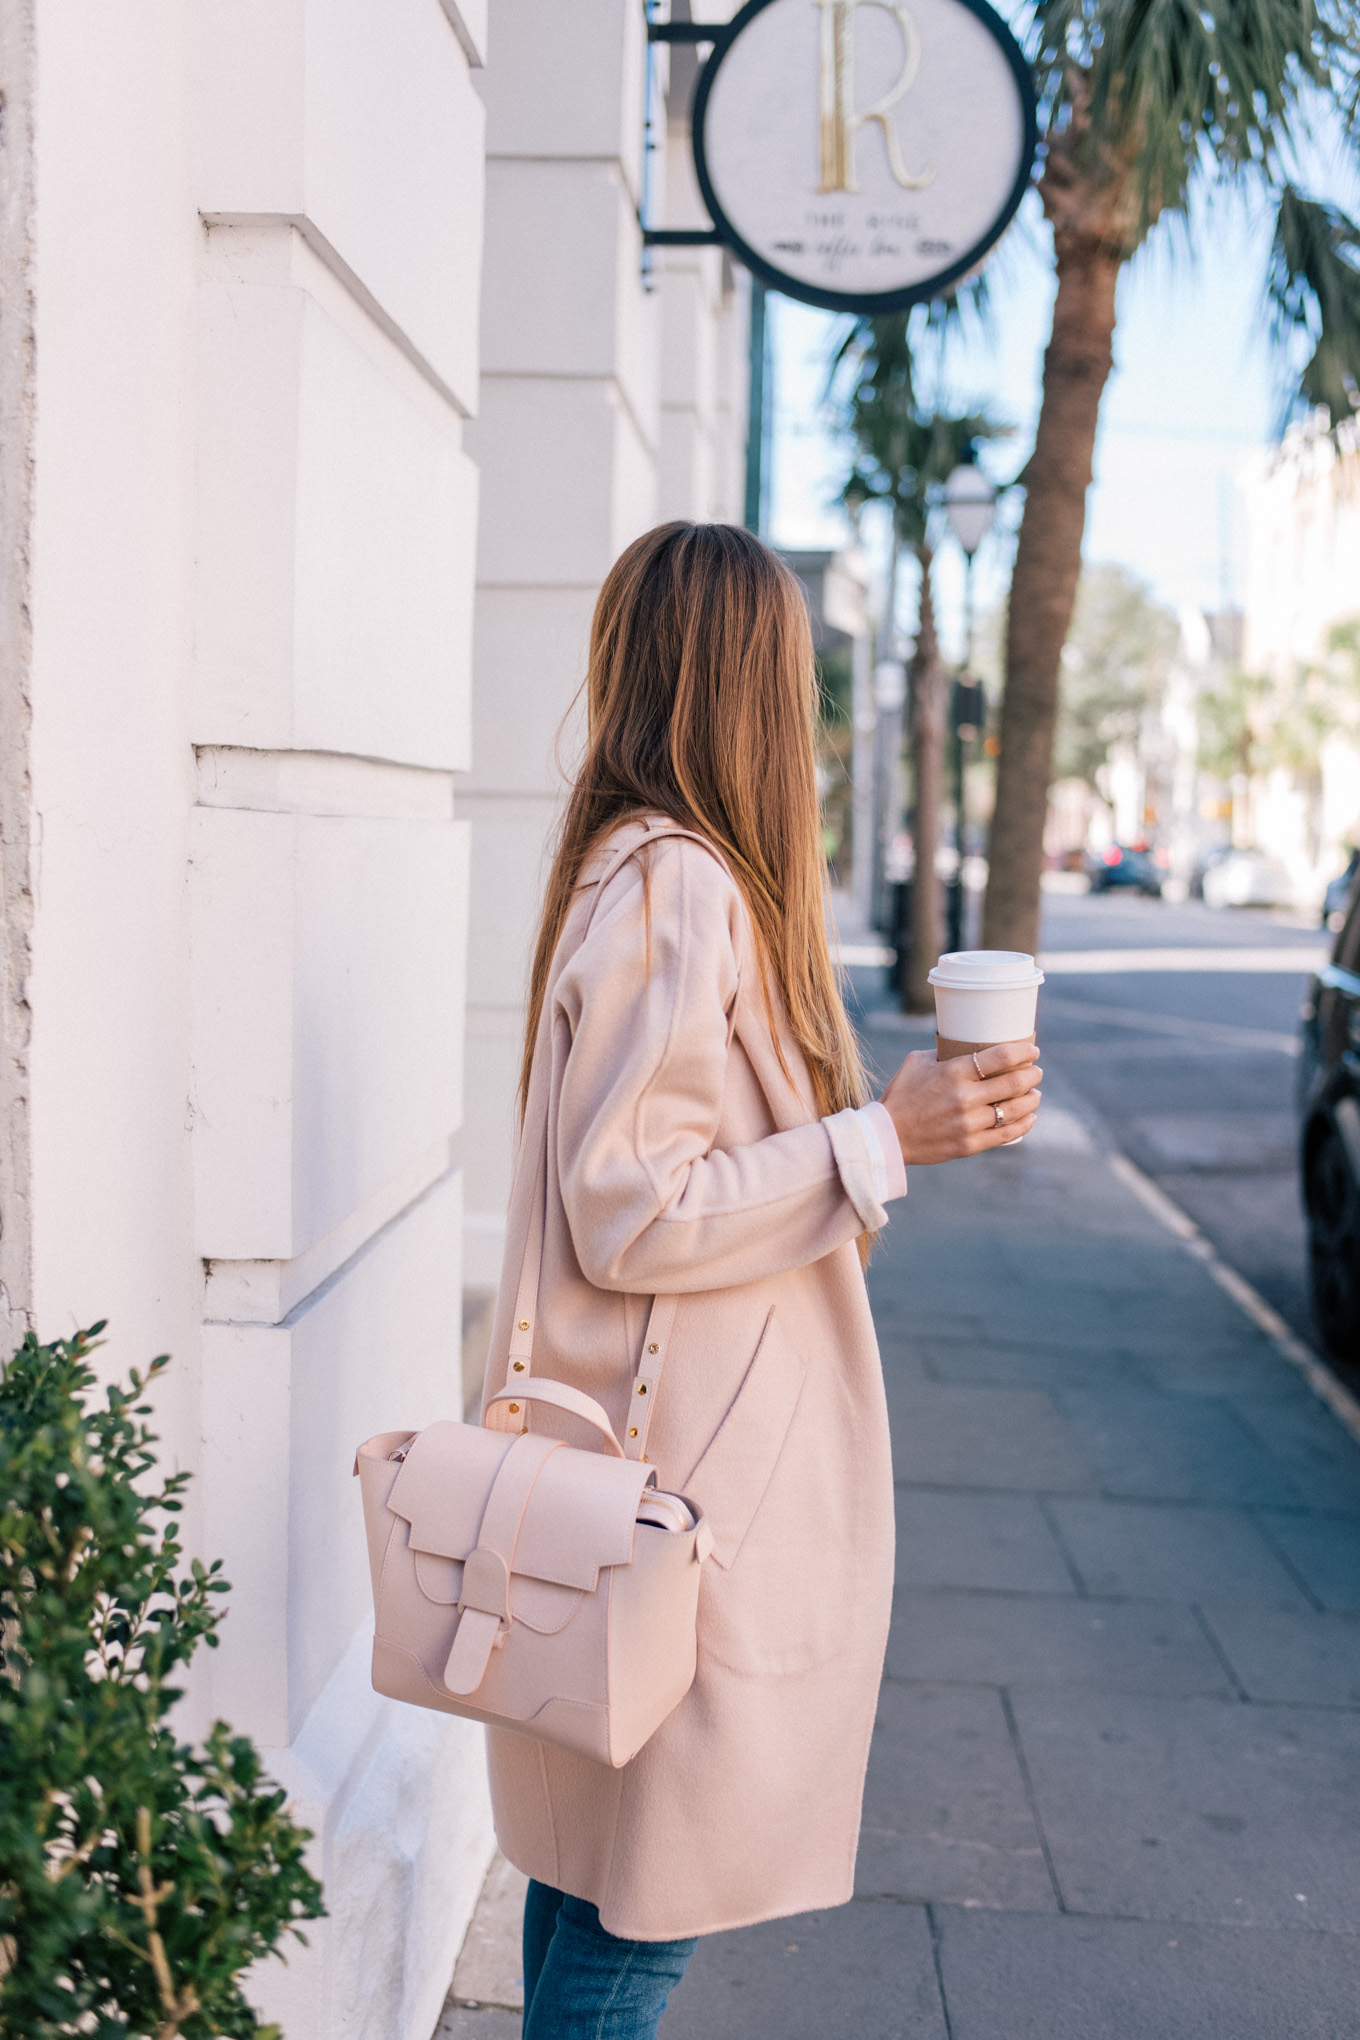 gmg-four-looks-one-bag-1000750